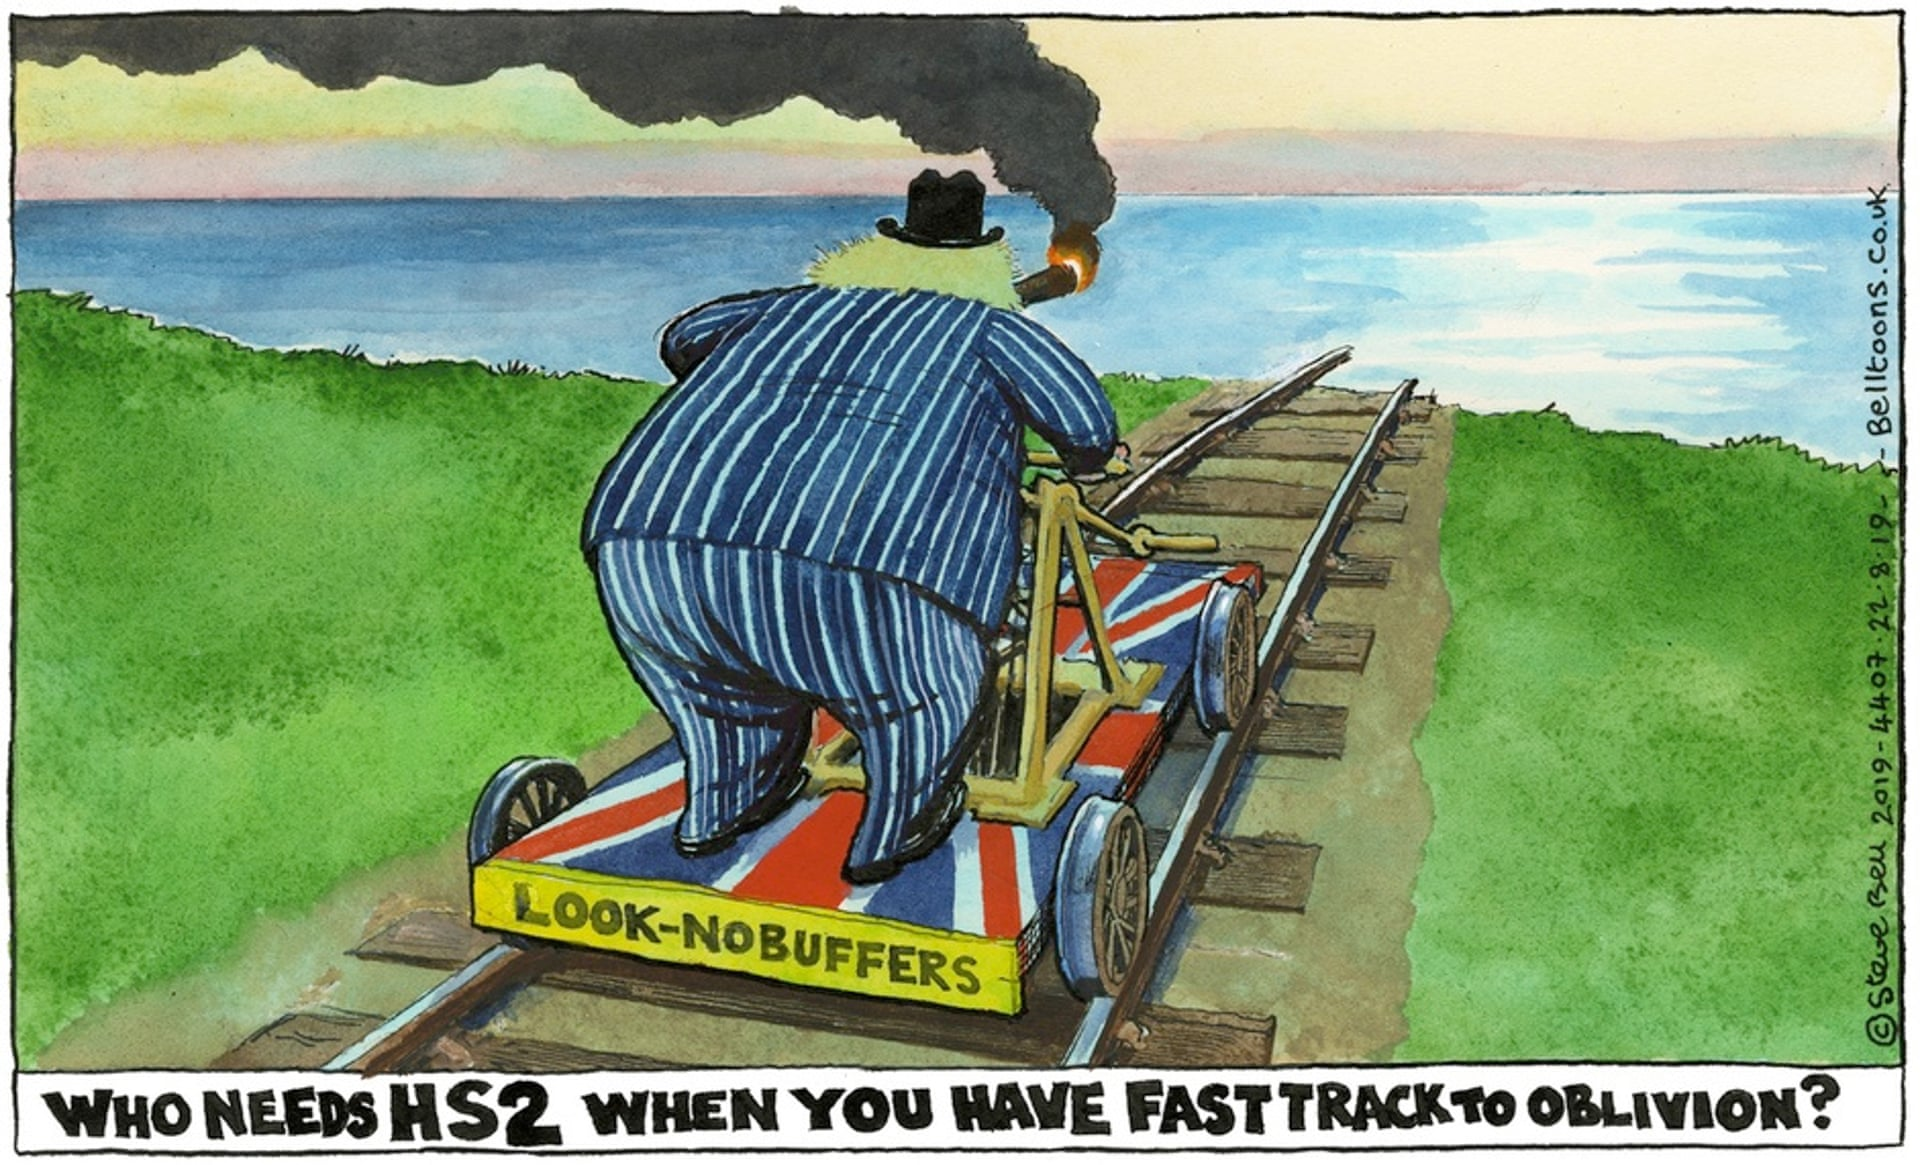 941 - Britain's biggest rail controversy - with some solutions